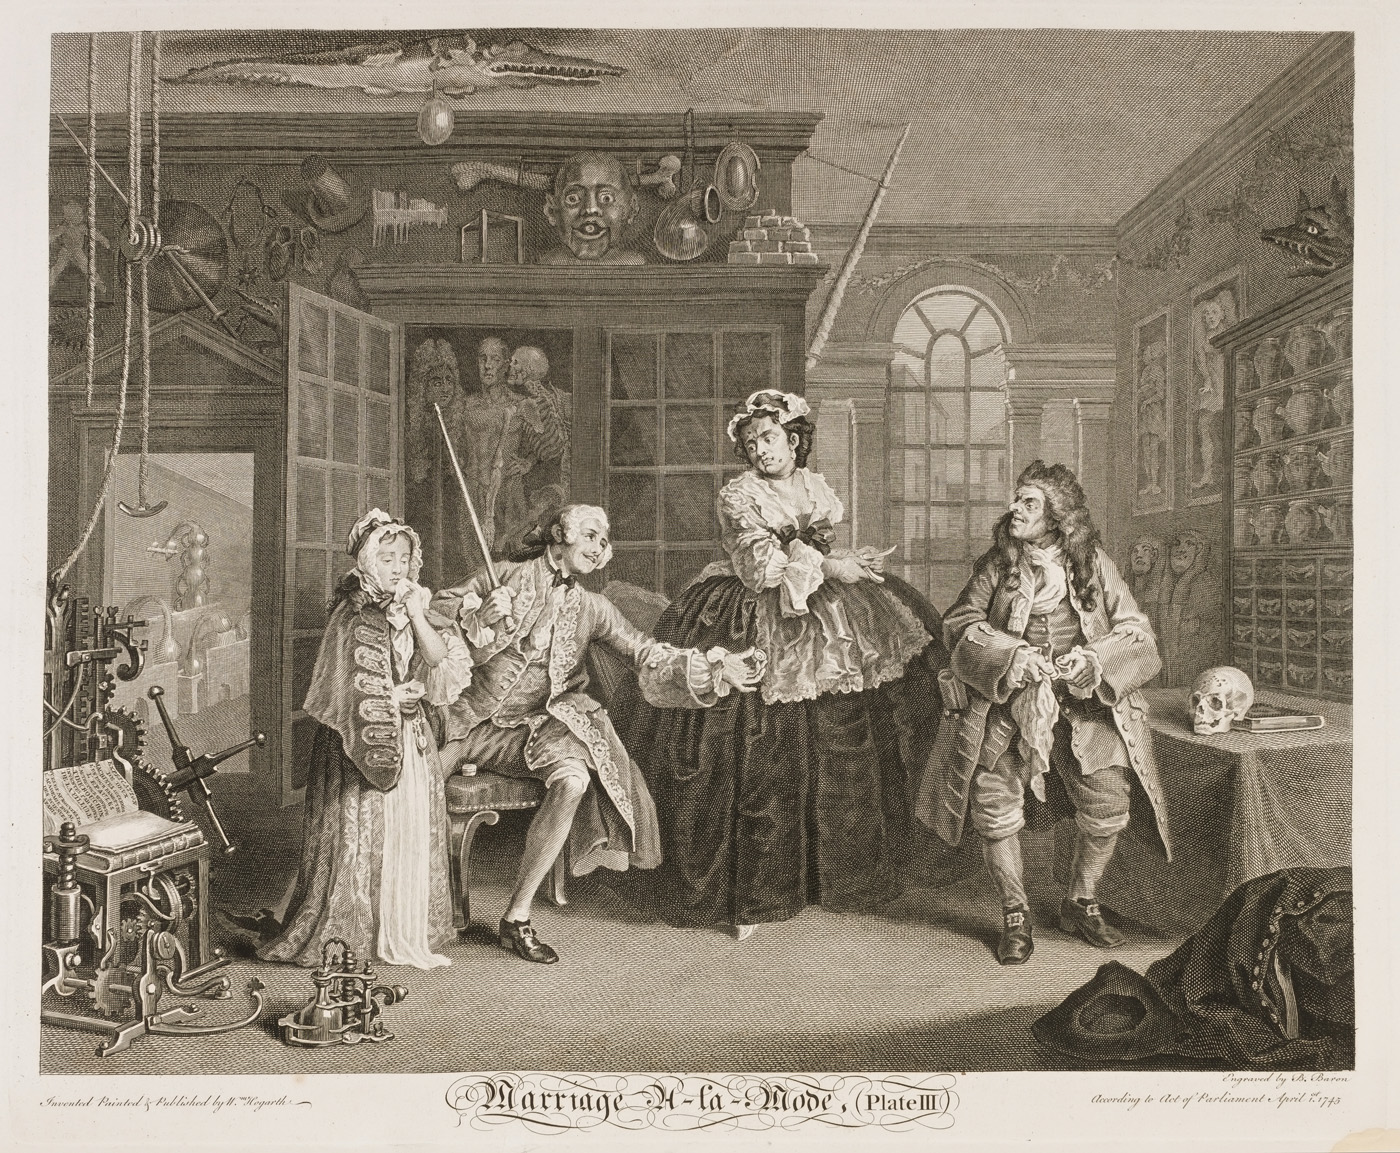 William Hogarth - Marriage à-la-mode plate 3